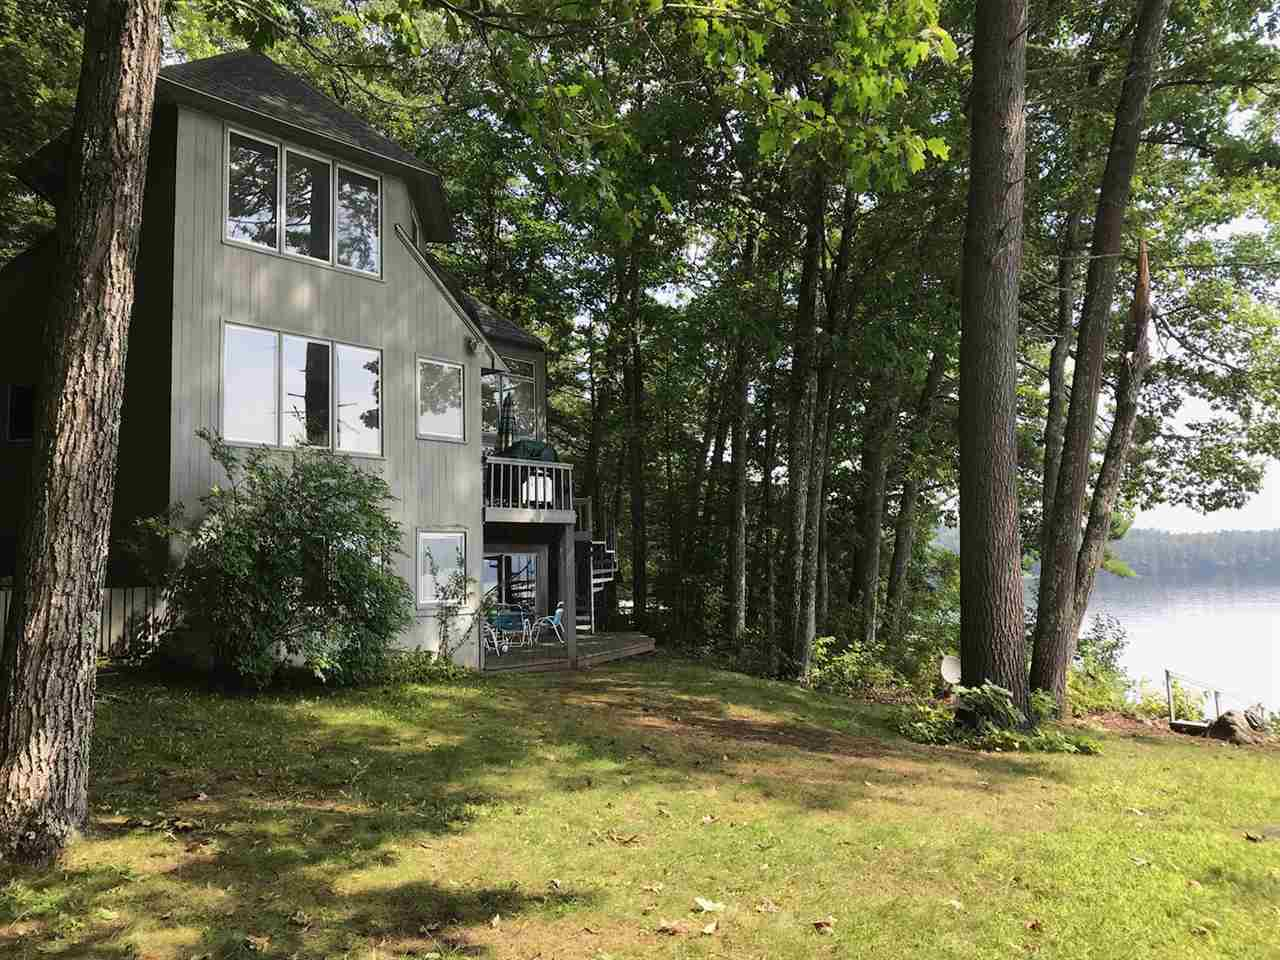 MLS 4716556: 473 Waukewan Road, Center Harbor NH